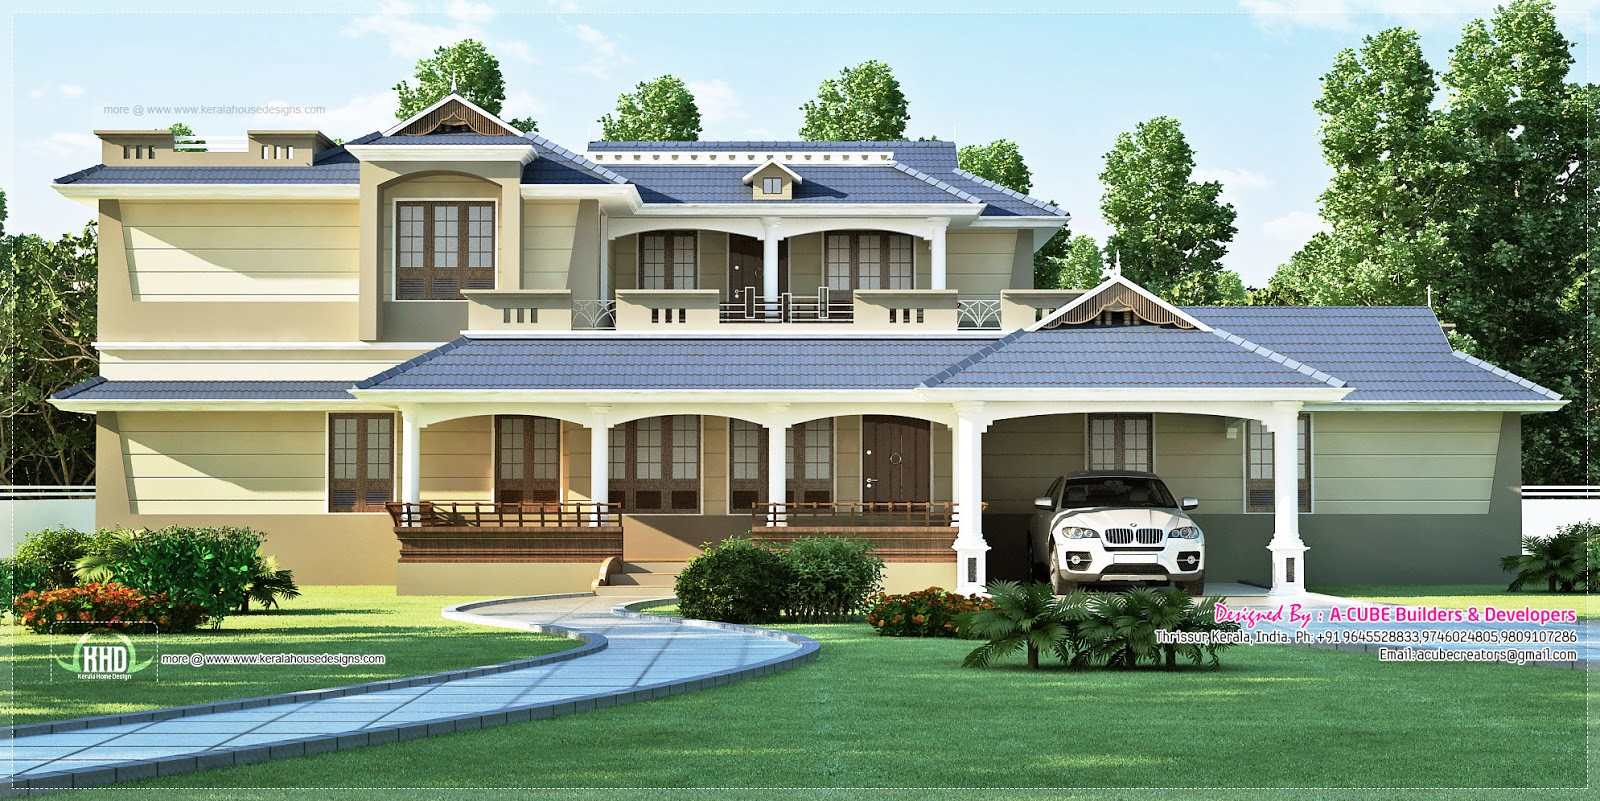 Luxury Sloping Roof 5 Bedroom Villa Exterior